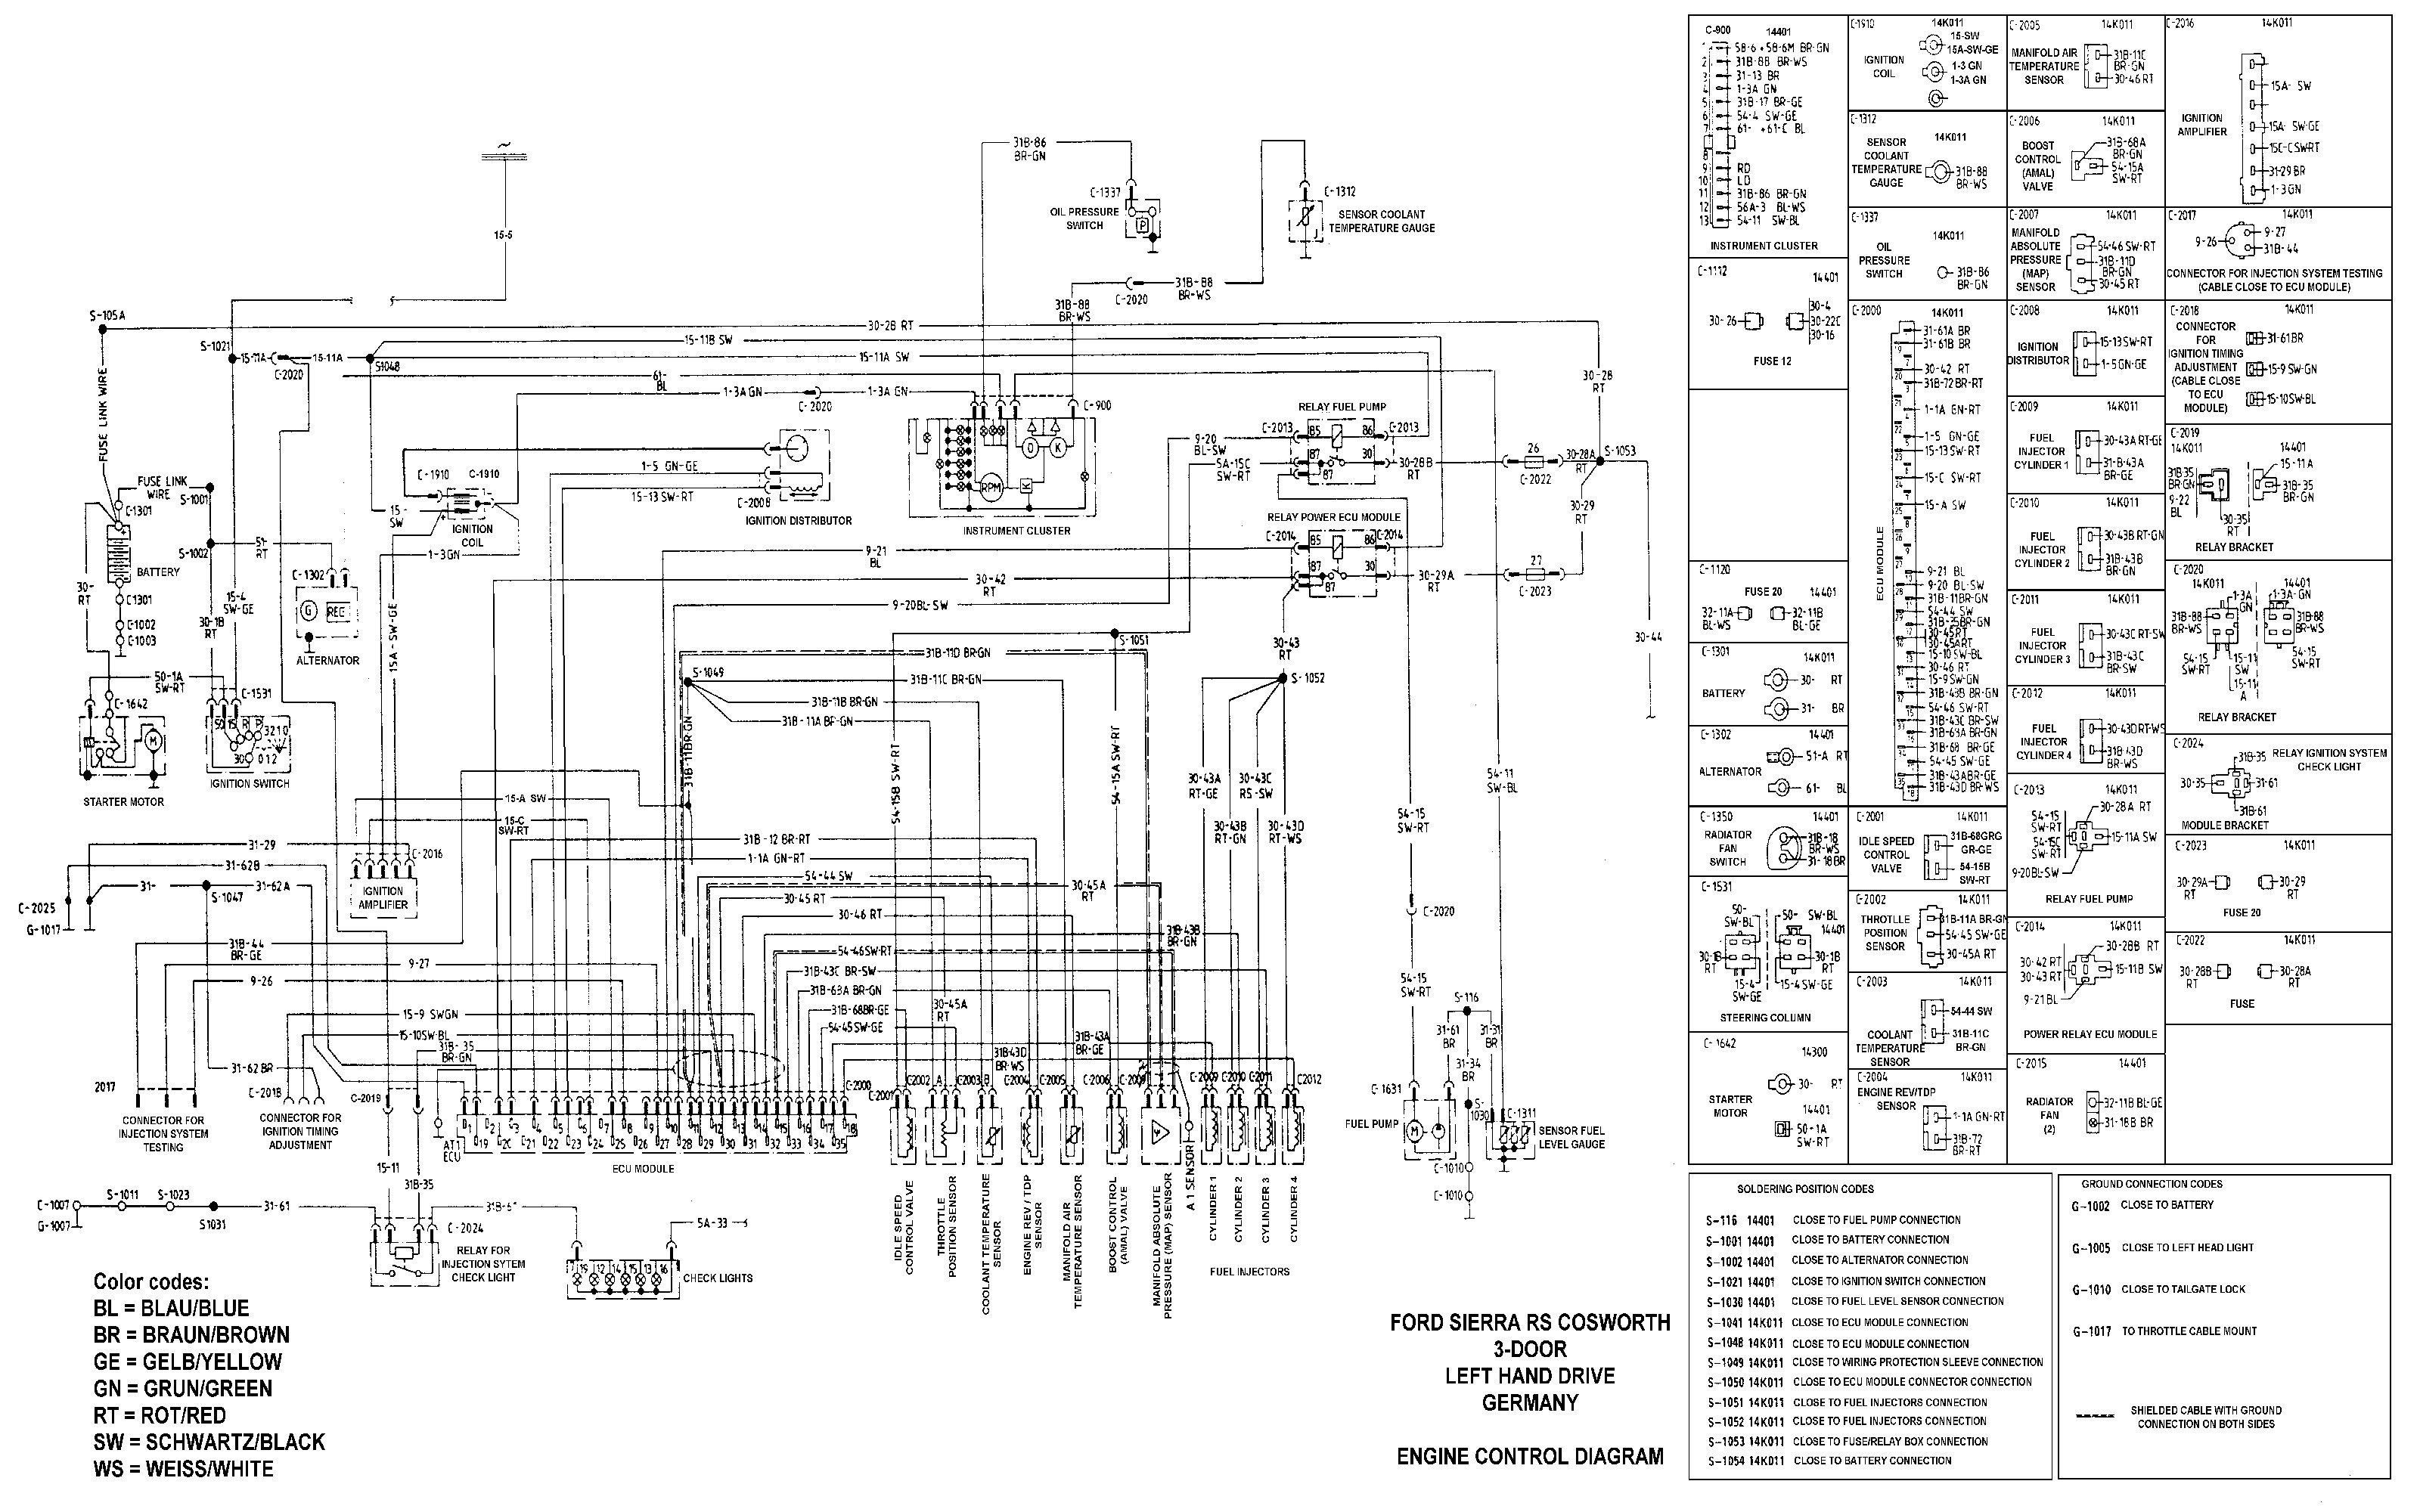 Unique Car Stereo Radio Wiring Diagram Diagram Ford Focus Trailer Wiring Diagram